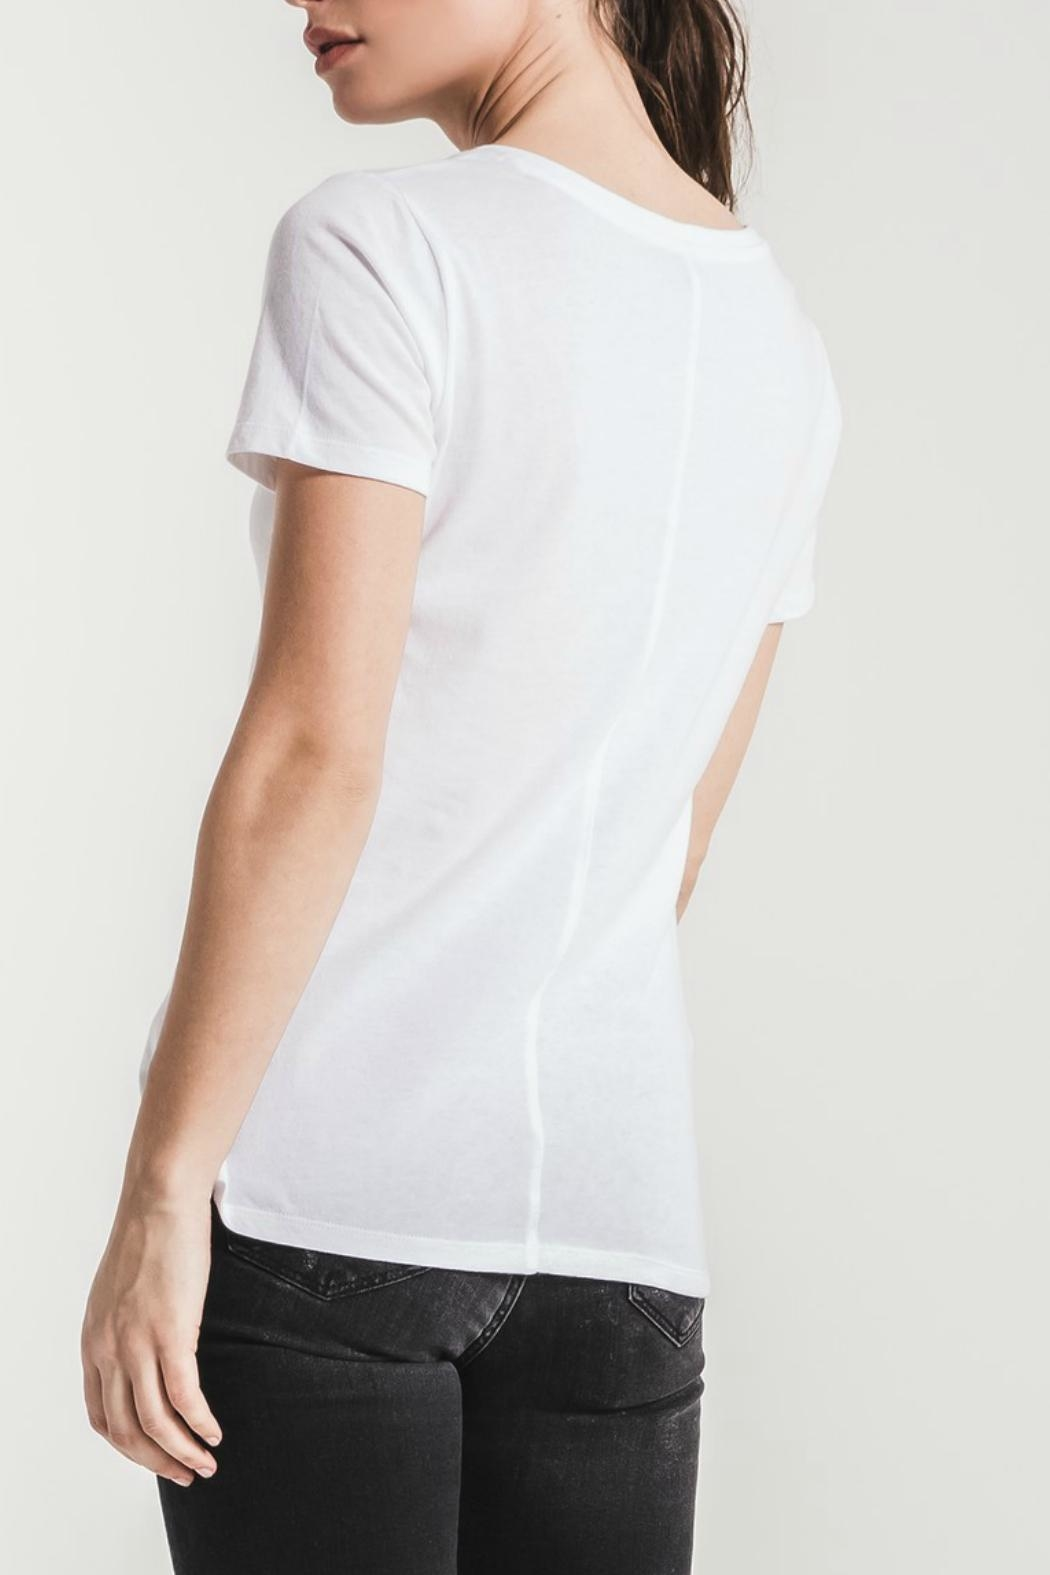 z supply Core V Tee - Front Full Image